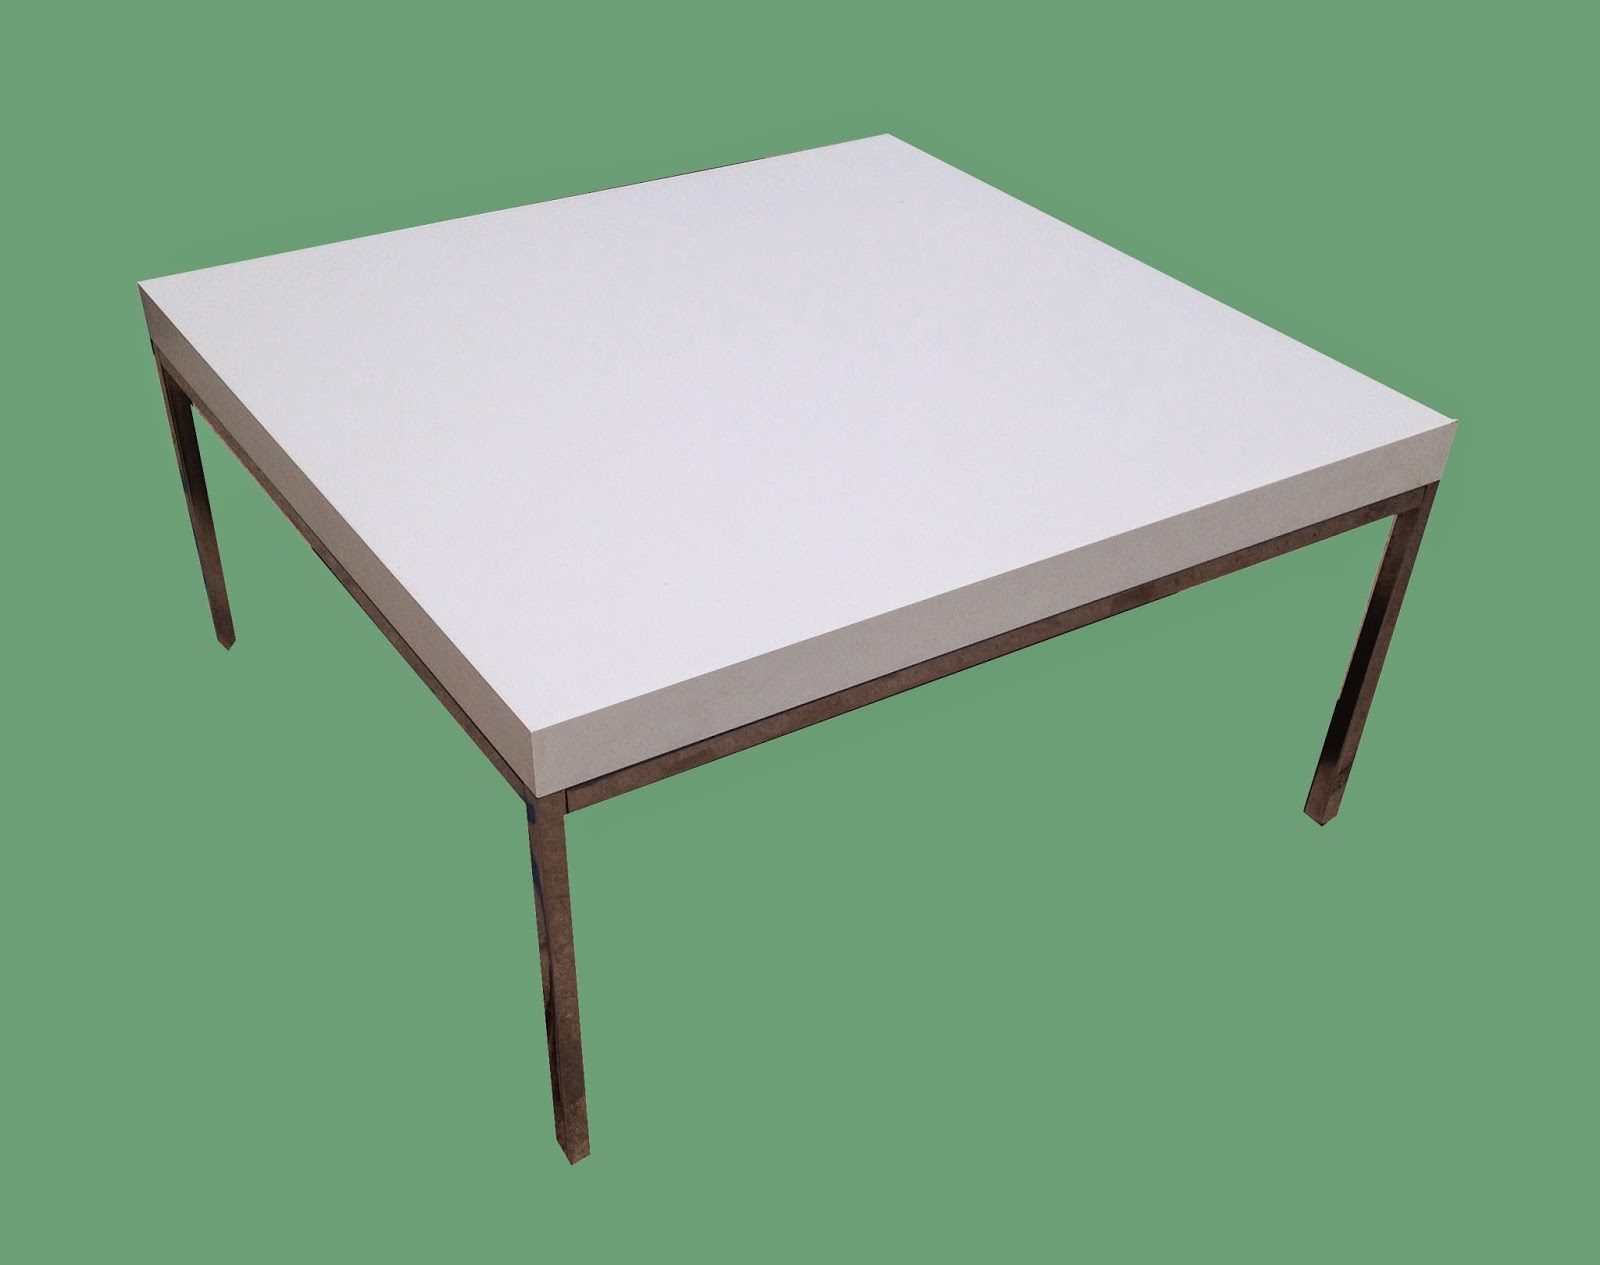 Uhuru furniture collectibles ikea coffee table 35 for Ikea cocktail table